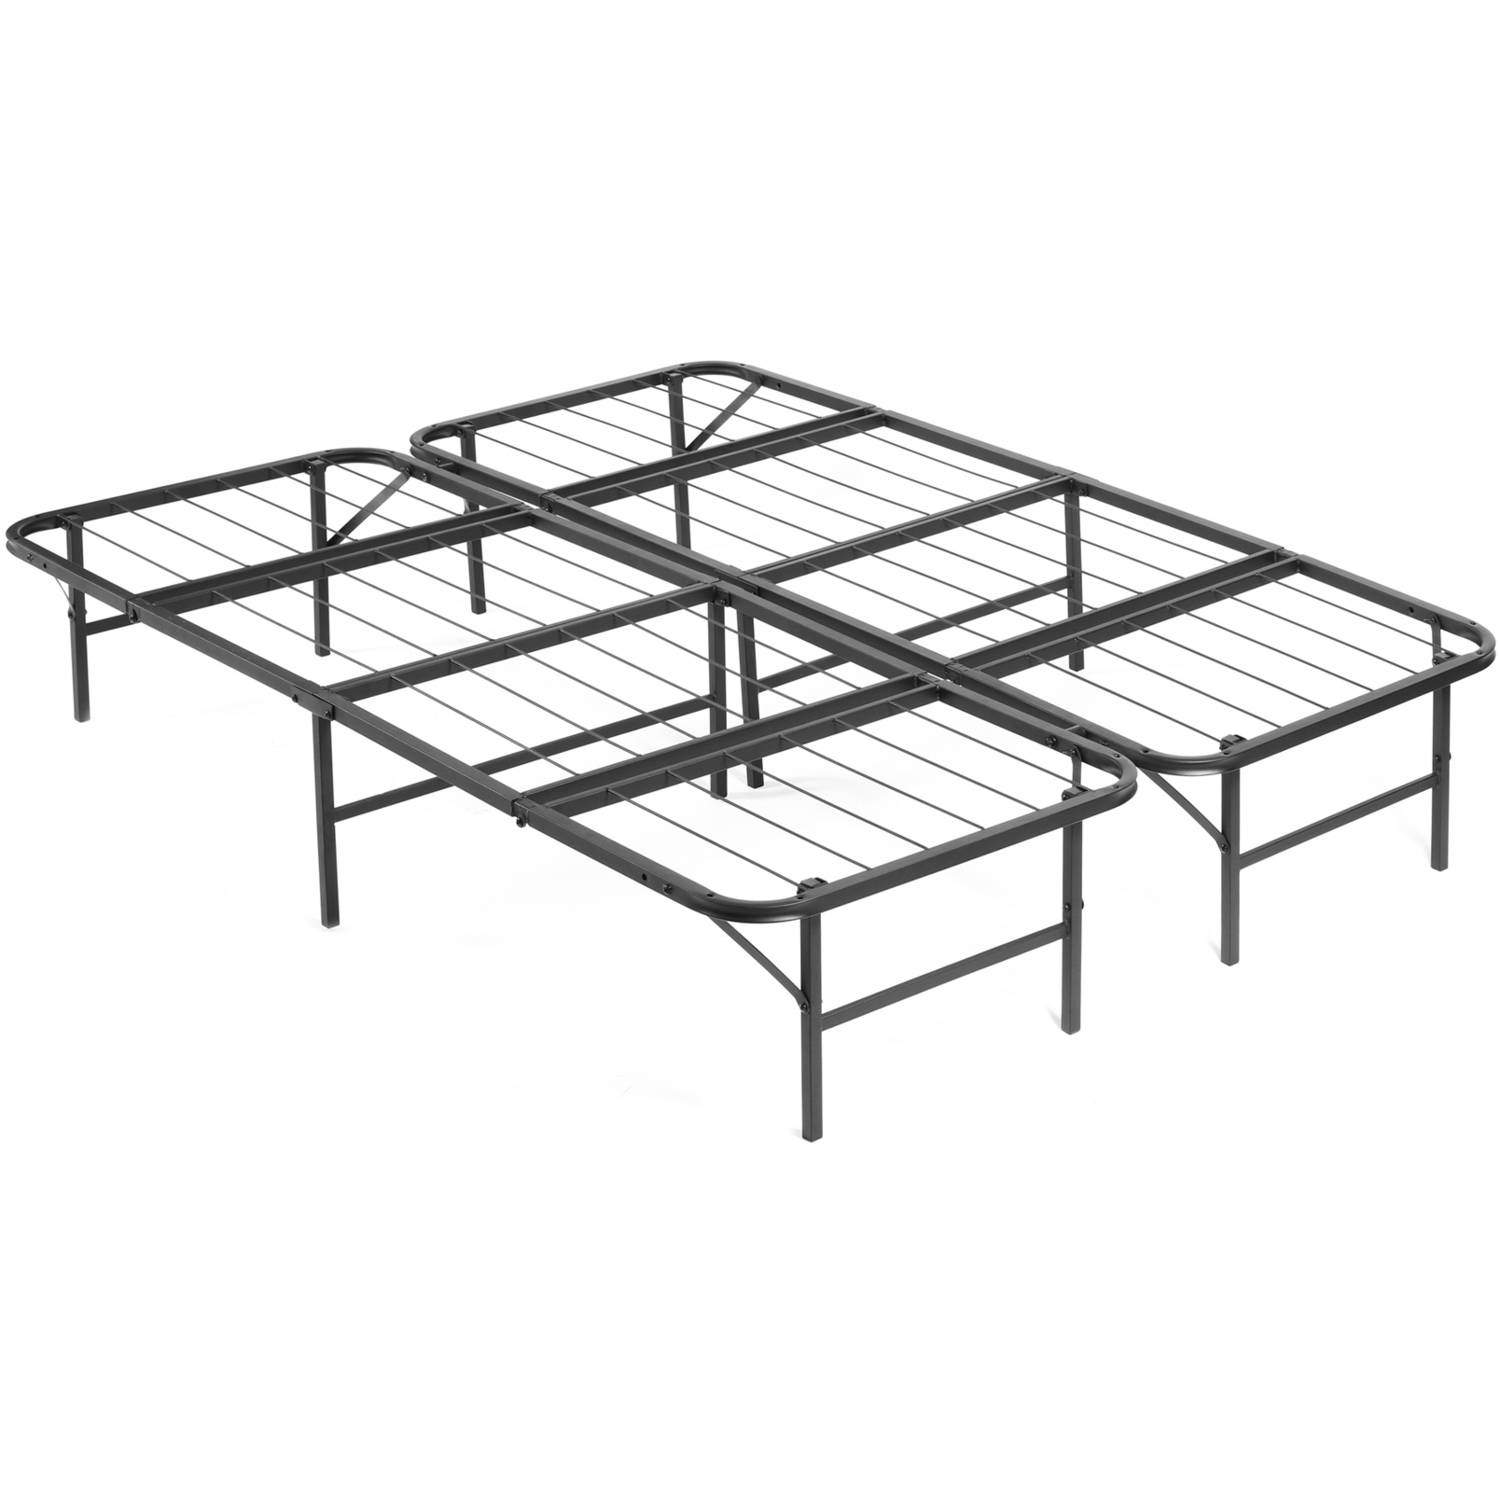 Pragma Simple Base Quad Fold Bed Frame Multiple